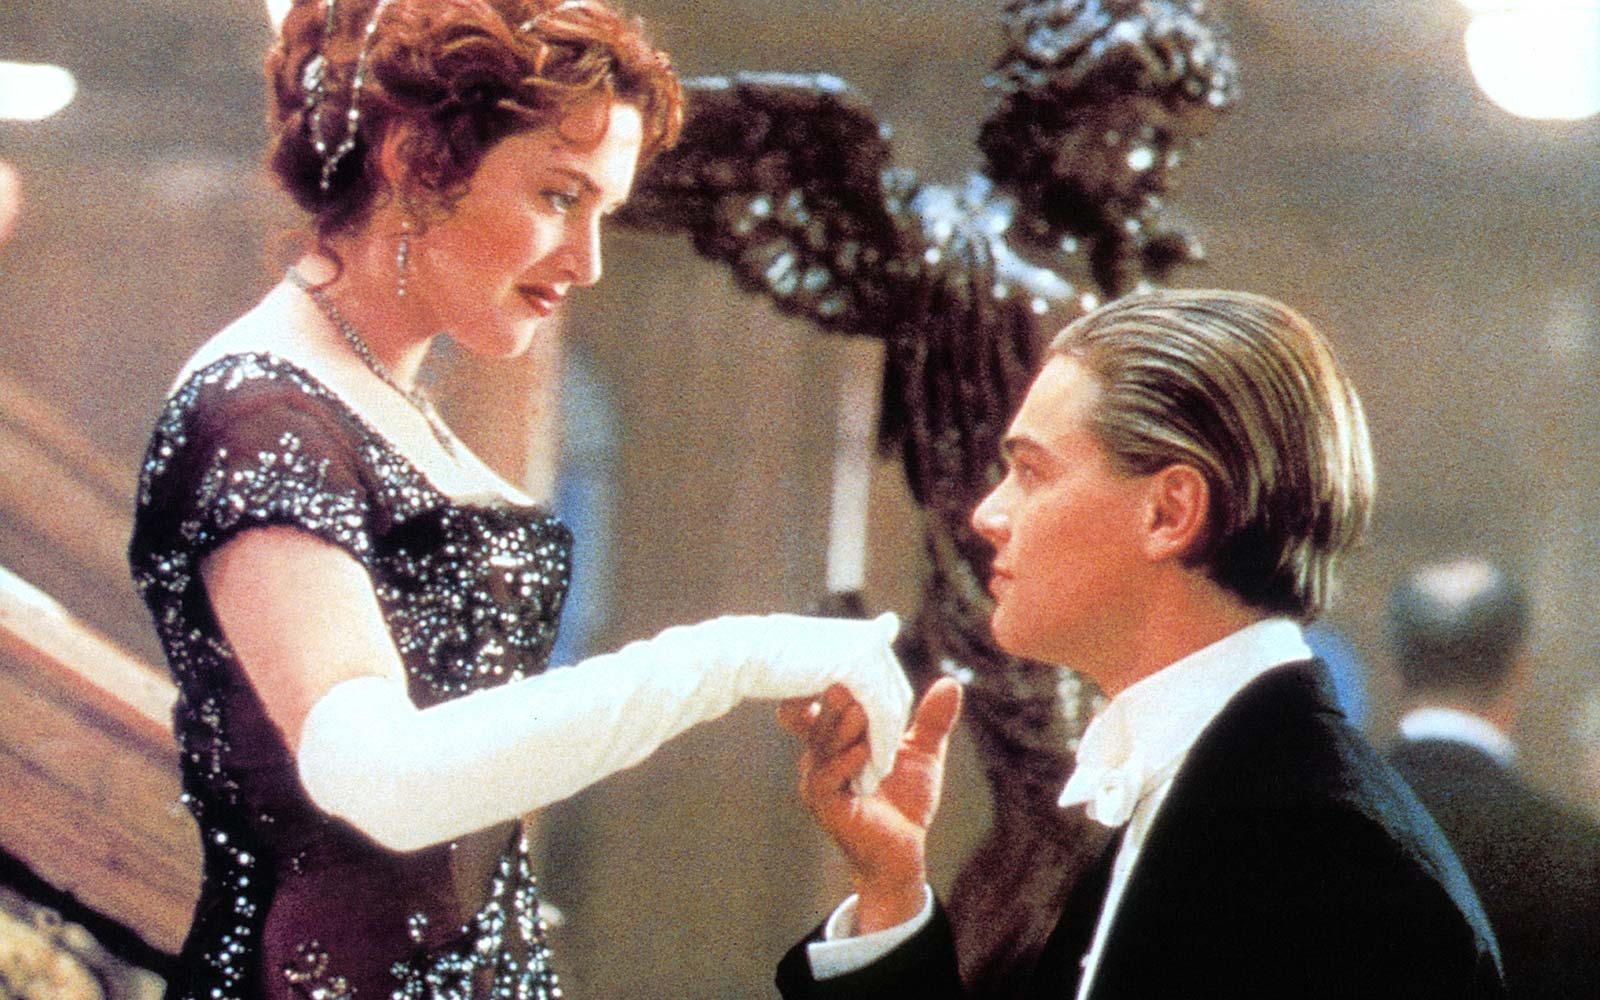 Here's How You Can Have Dinner With Leonardo DiCaprio and Kate Winslet